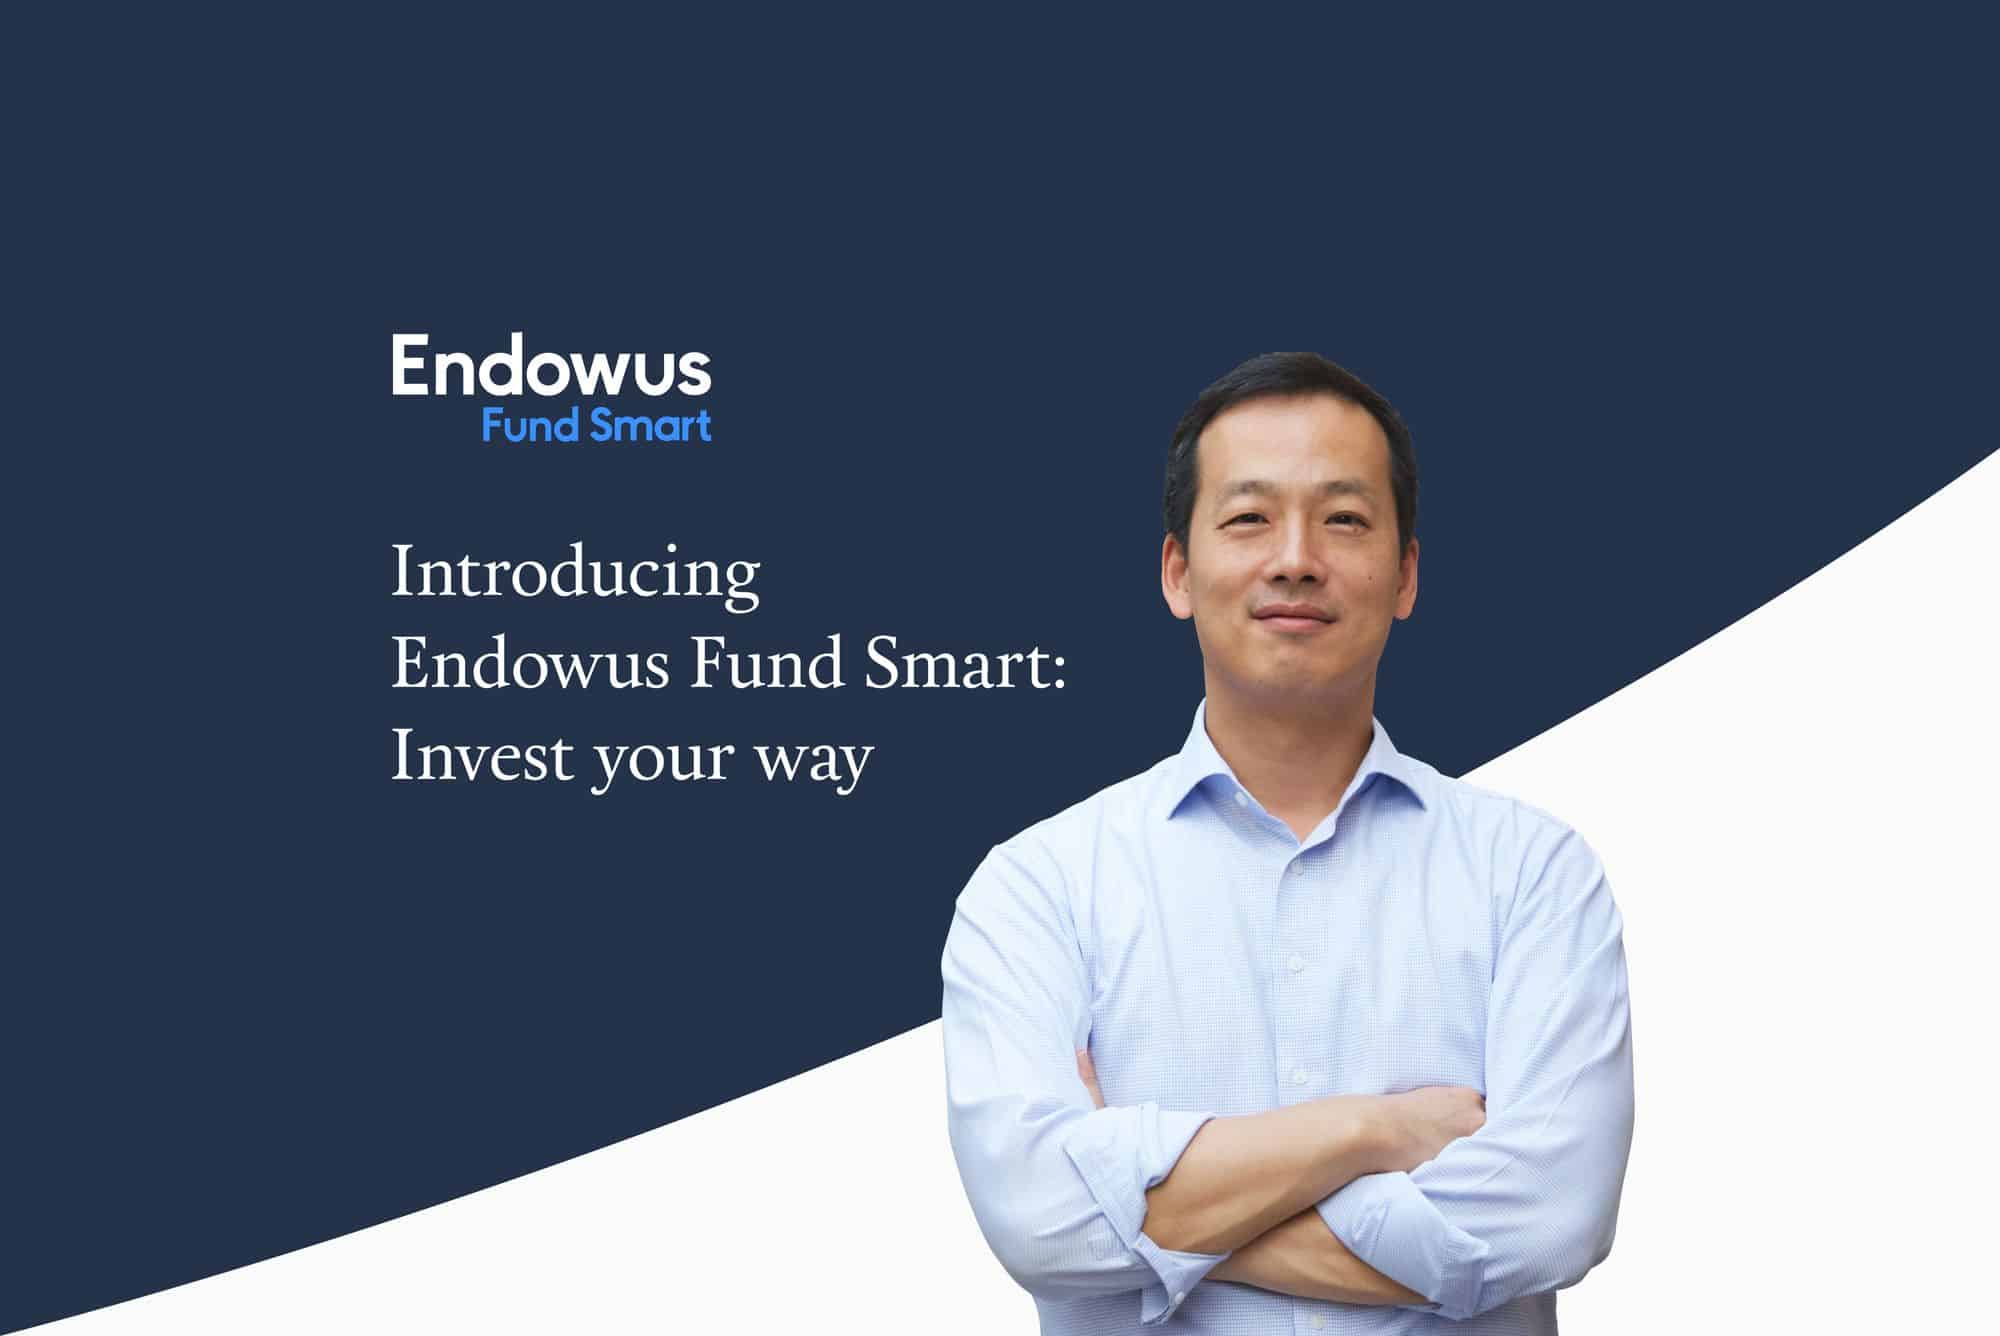 Introducing Endowus Fund Smart – build your own best-in-class investment portfolio, guided and advised by the Endowus team